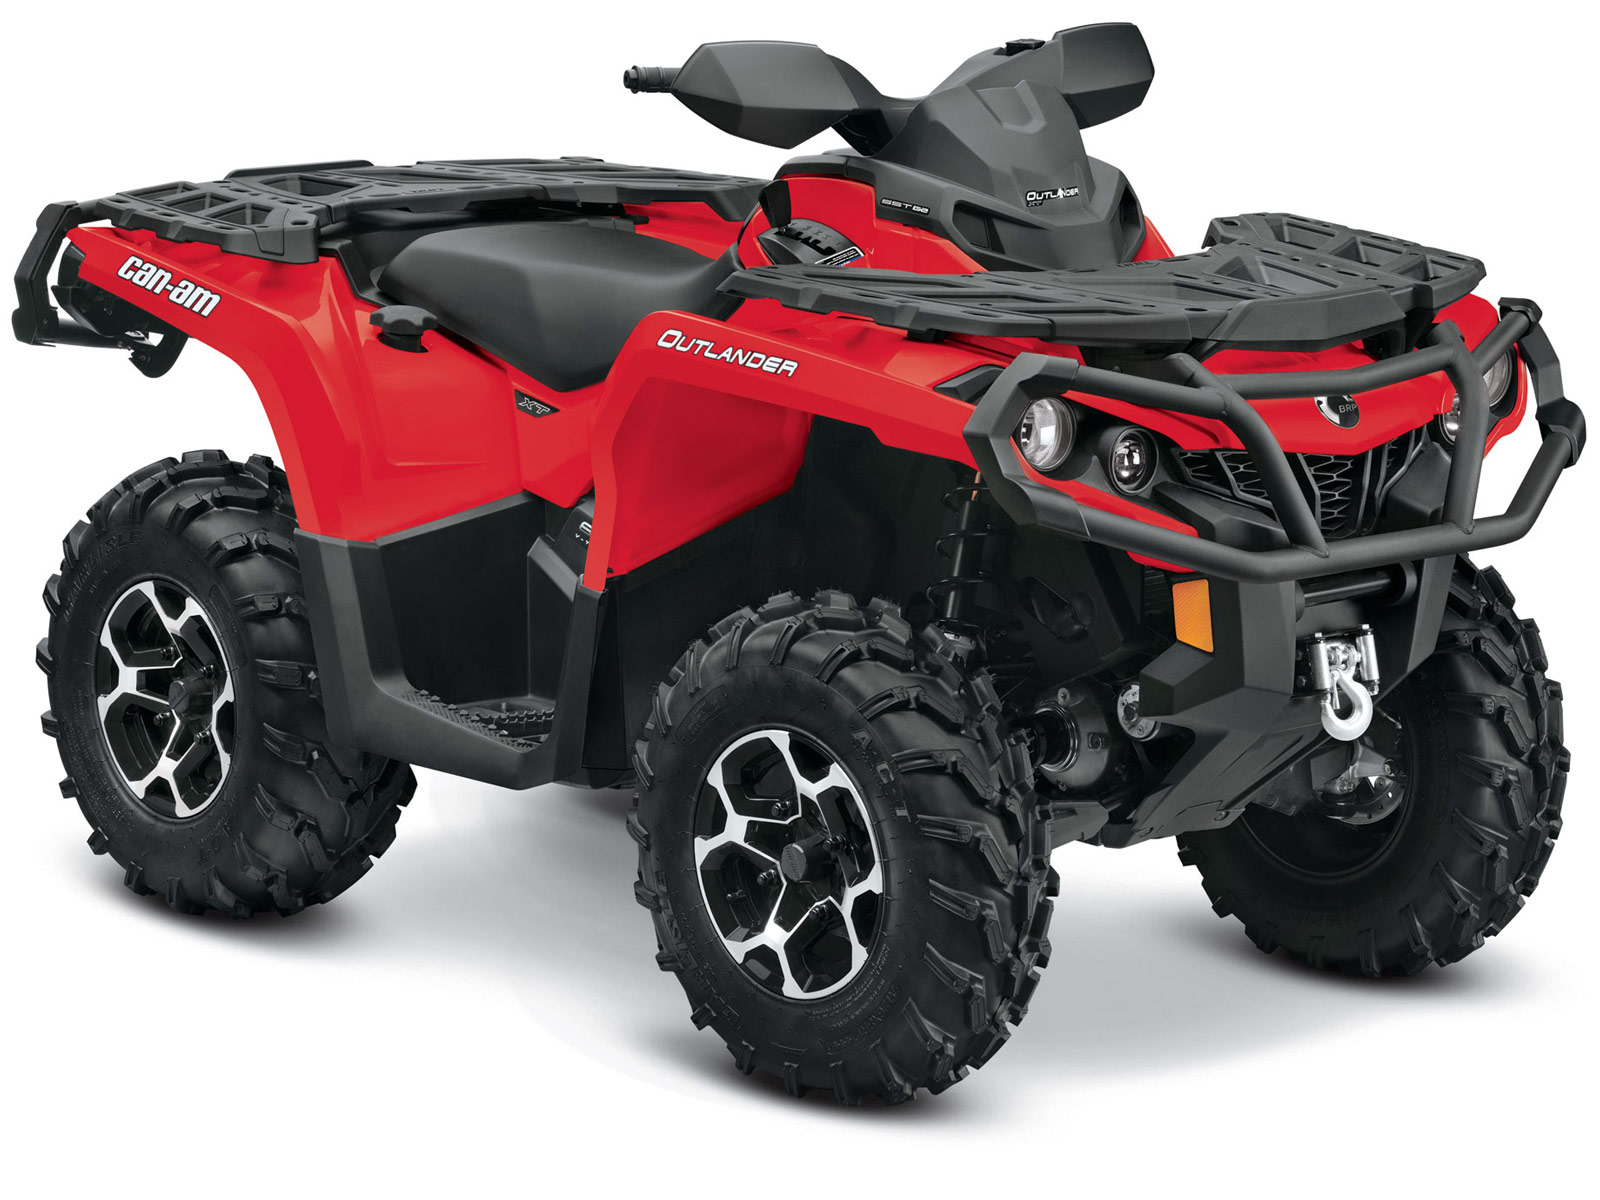 2013 can am atv pictures outlander xt 650 specifications review. Black Bedroom Furniture Sets. Home Design Ideas